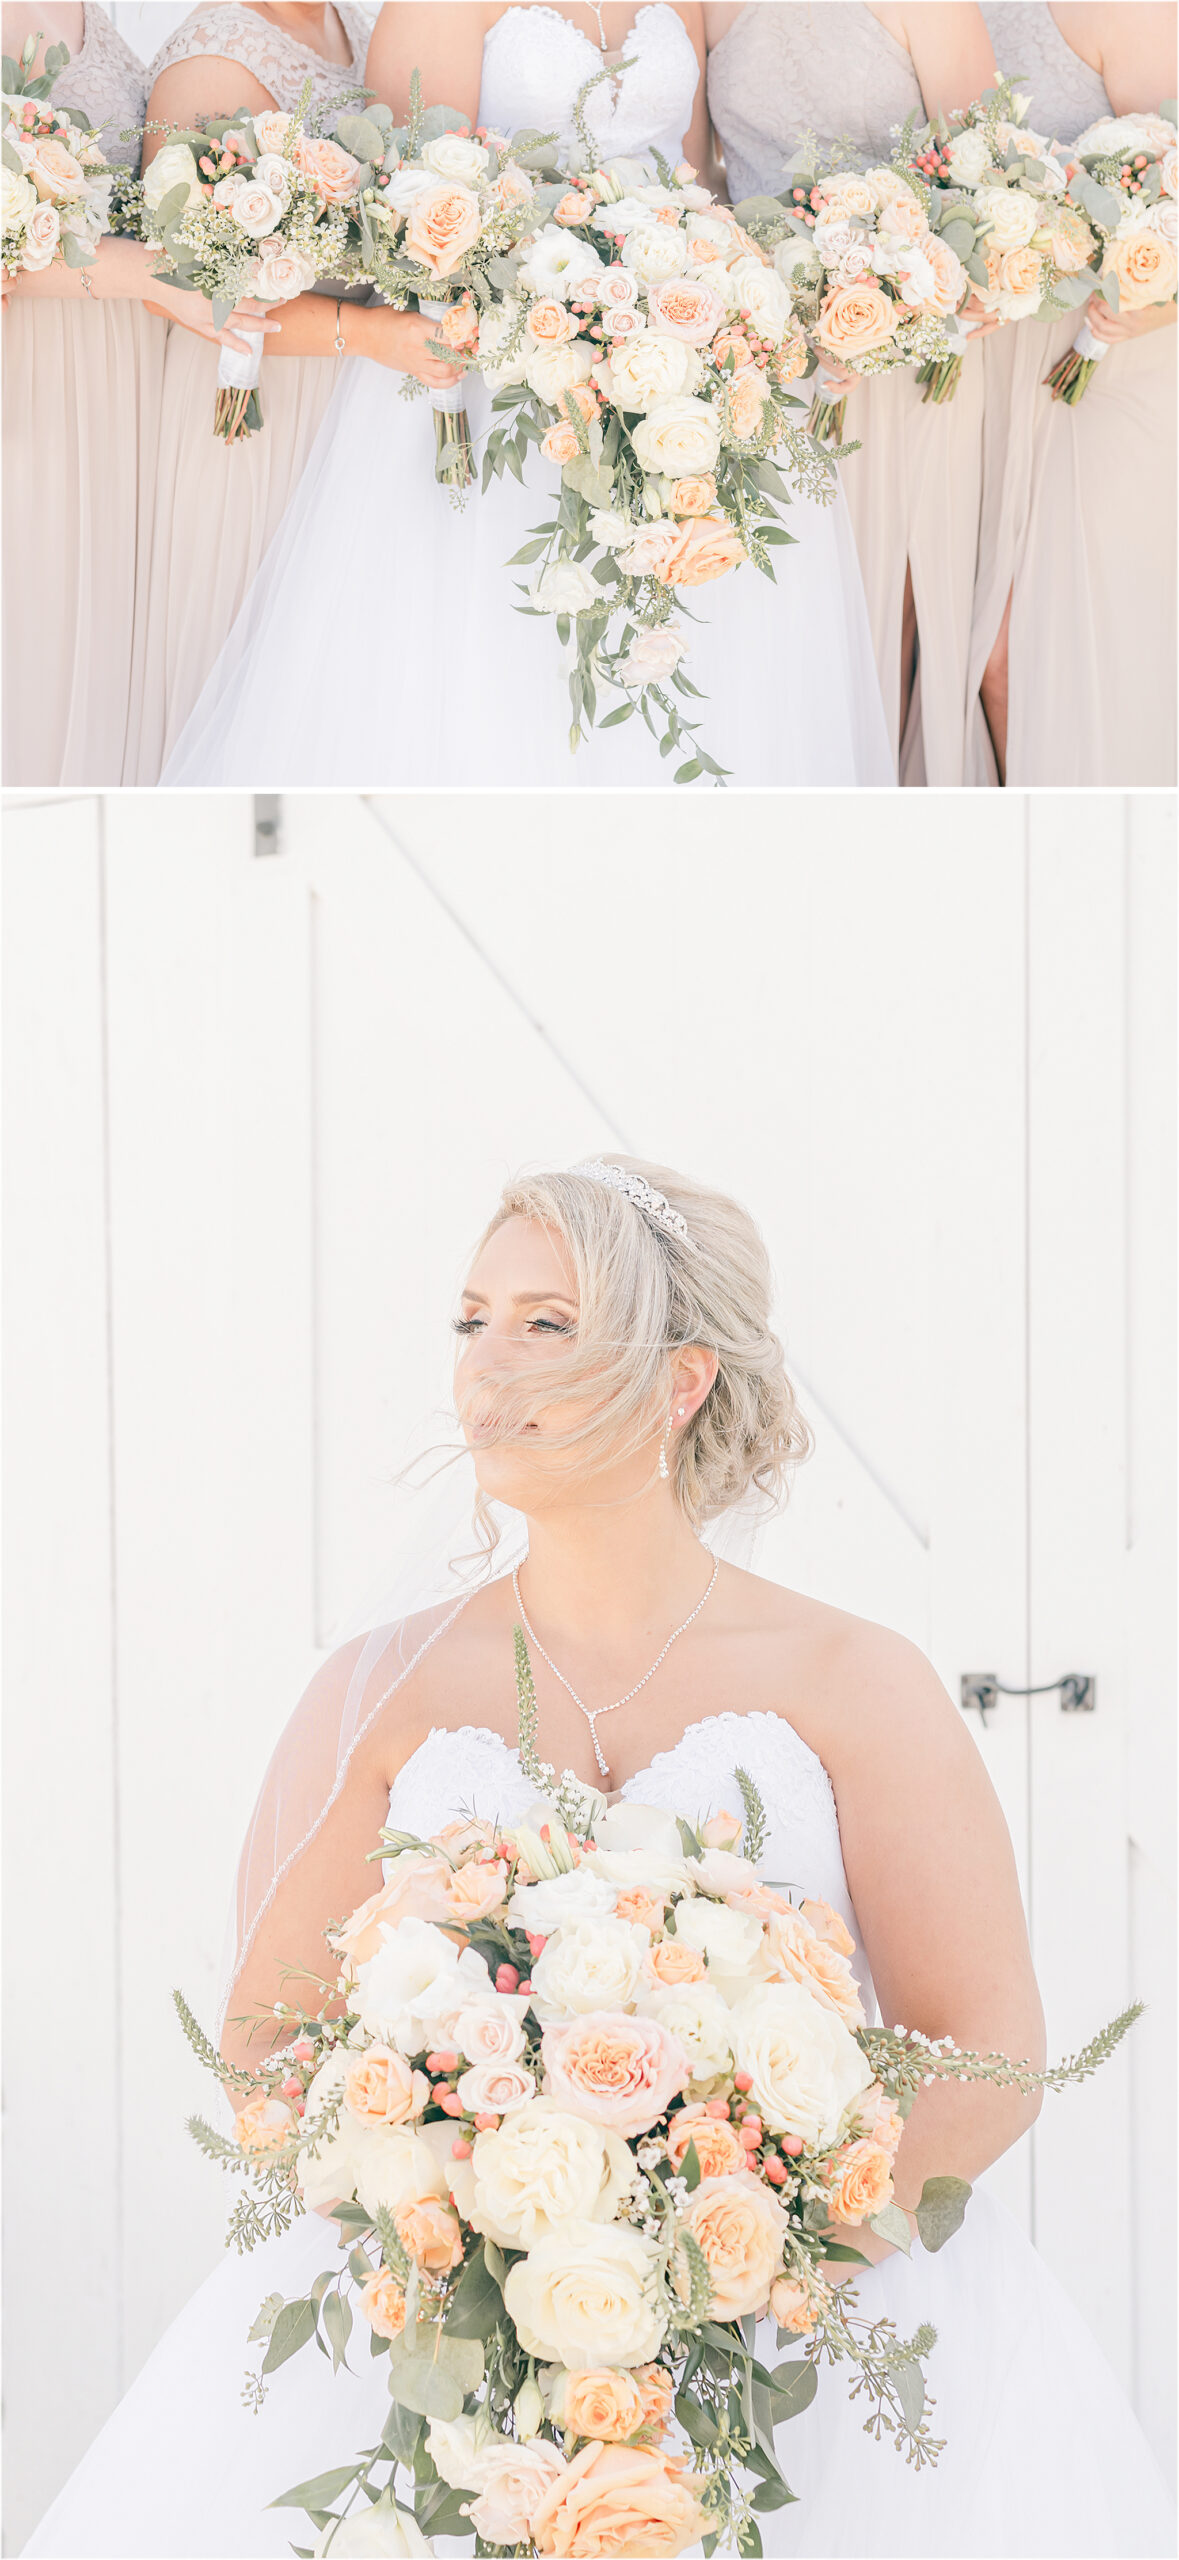 Lindsay-Adkins-Photography-Top10BridalBouquets2019-5